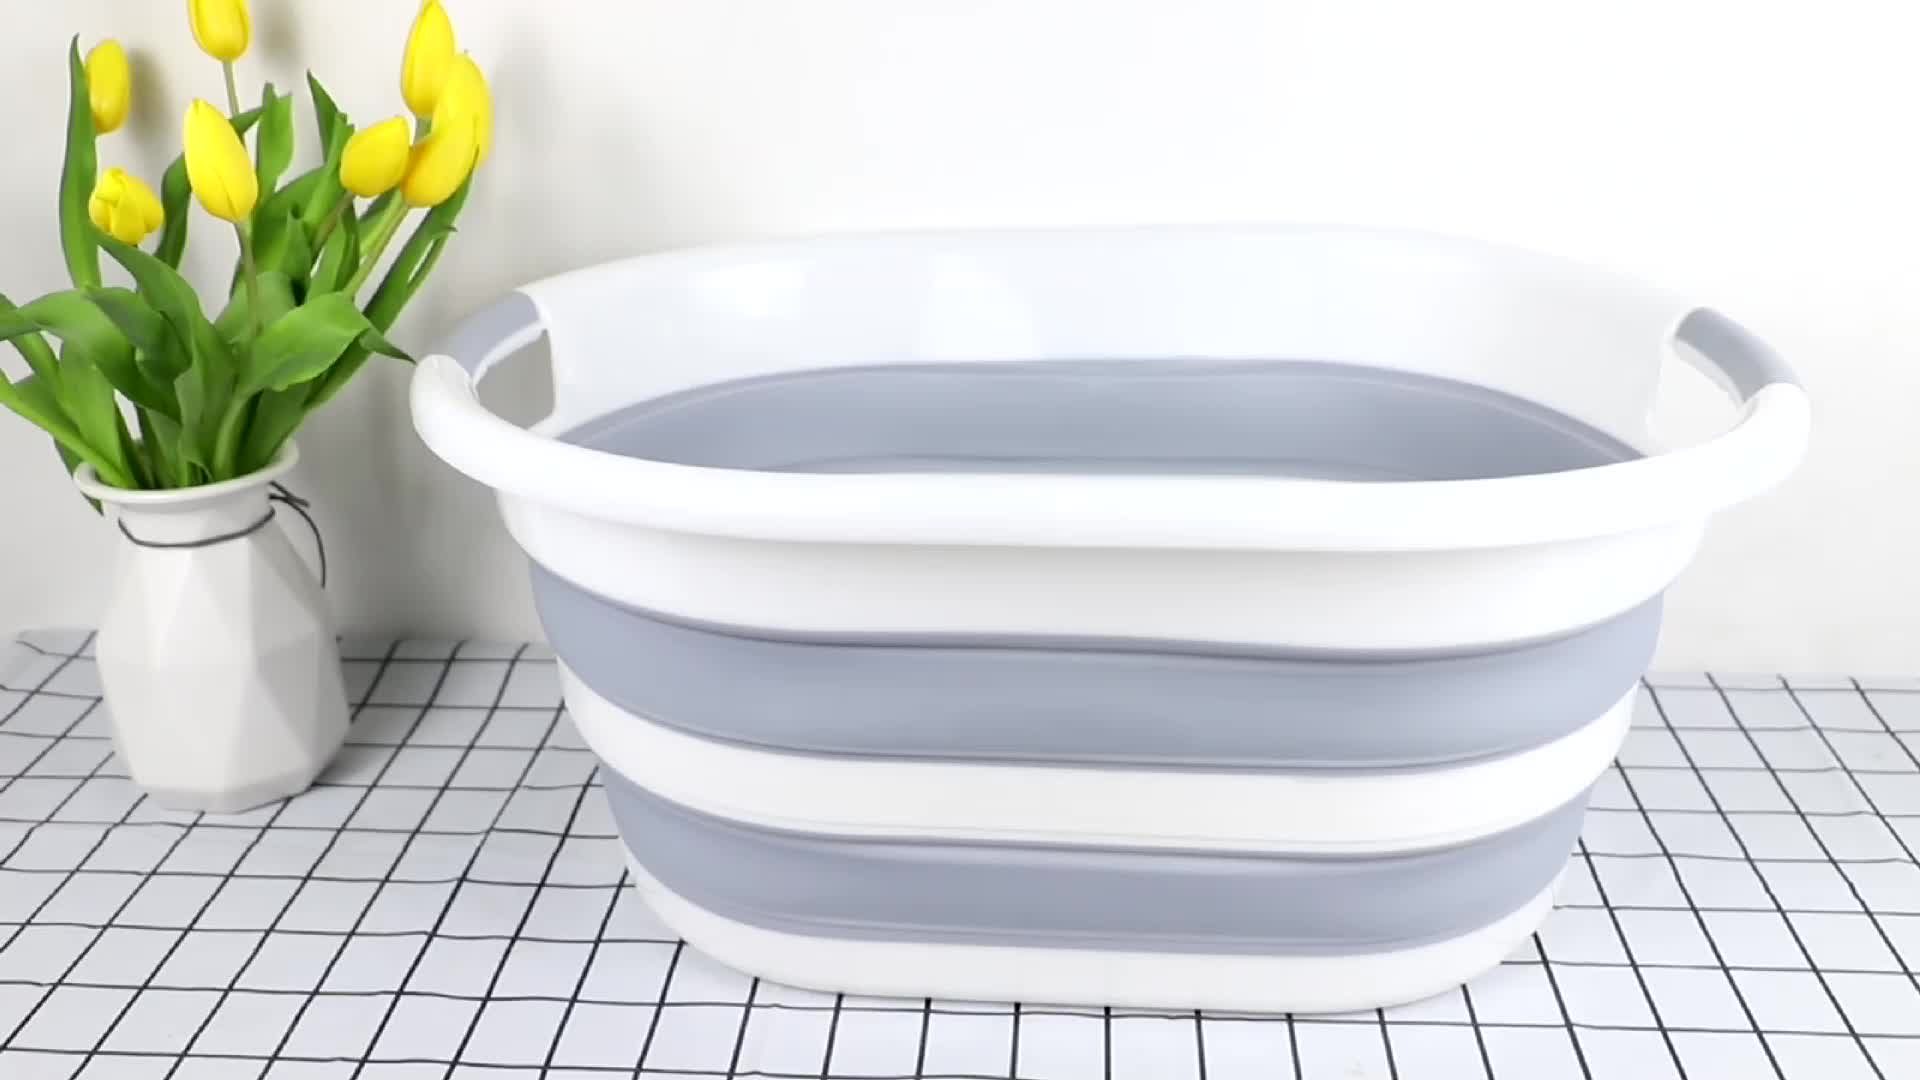 Foldable Pop Up Storage Container collapsible plastic laundry basket